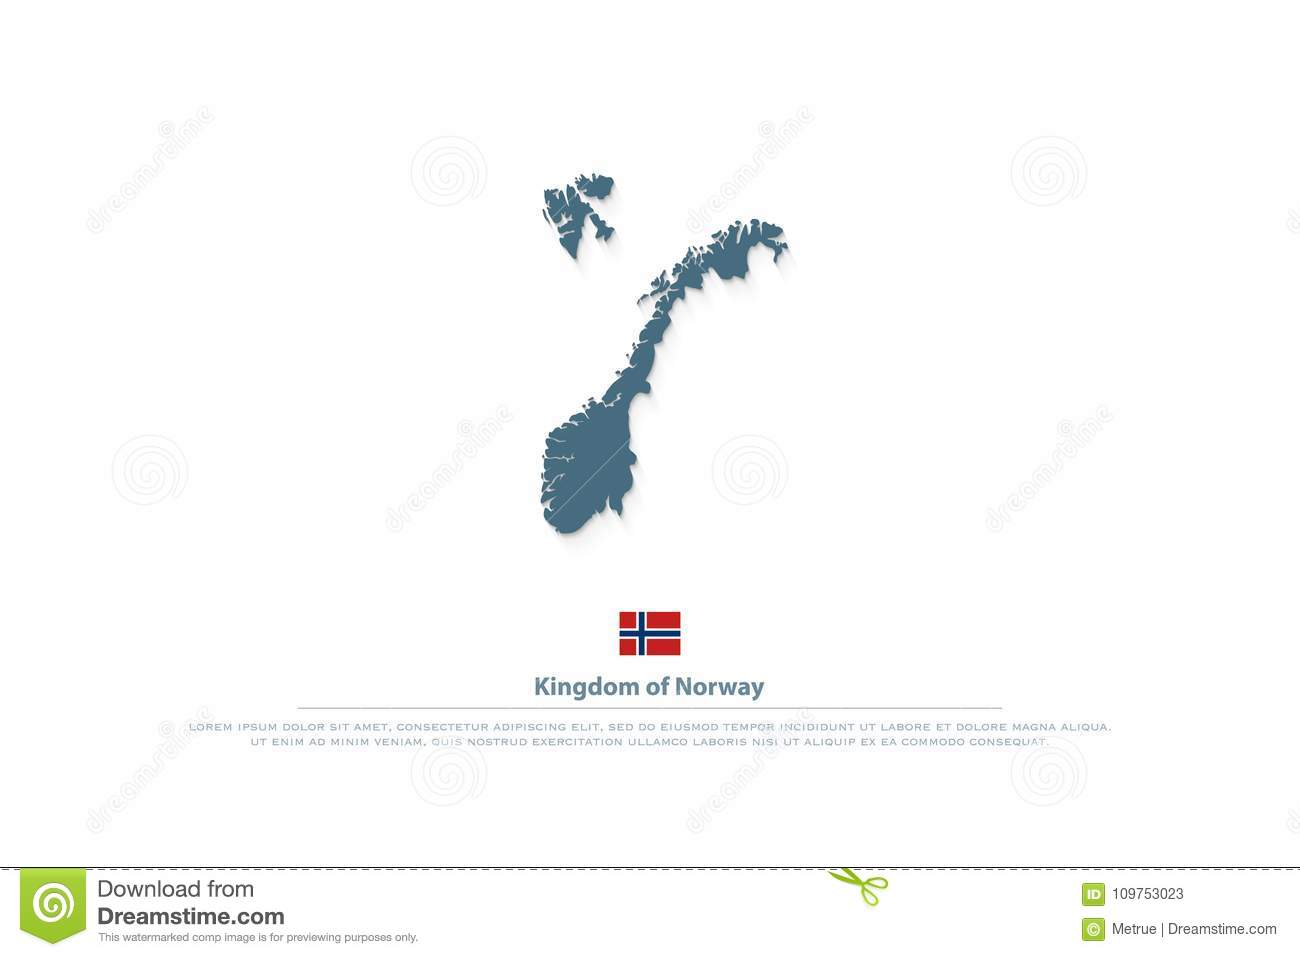 Kingdom Of Norway Isolated Maps And Official Flag Icon Stock Vector on republic of panama map, republic of maldives map, russian federation map, united arab emirates map, republic of moldova map, republic of turkey map, republic of san marino map, republic of india map, bailiwick of jersey map, republic of cyprus map, state of israel map, republic of colombia map, republic of south africa map, people's republic of china map, united states of america map, united republic of tanzania map, republic of belarus map, republic of nauru map, japan map, republic of palau map,